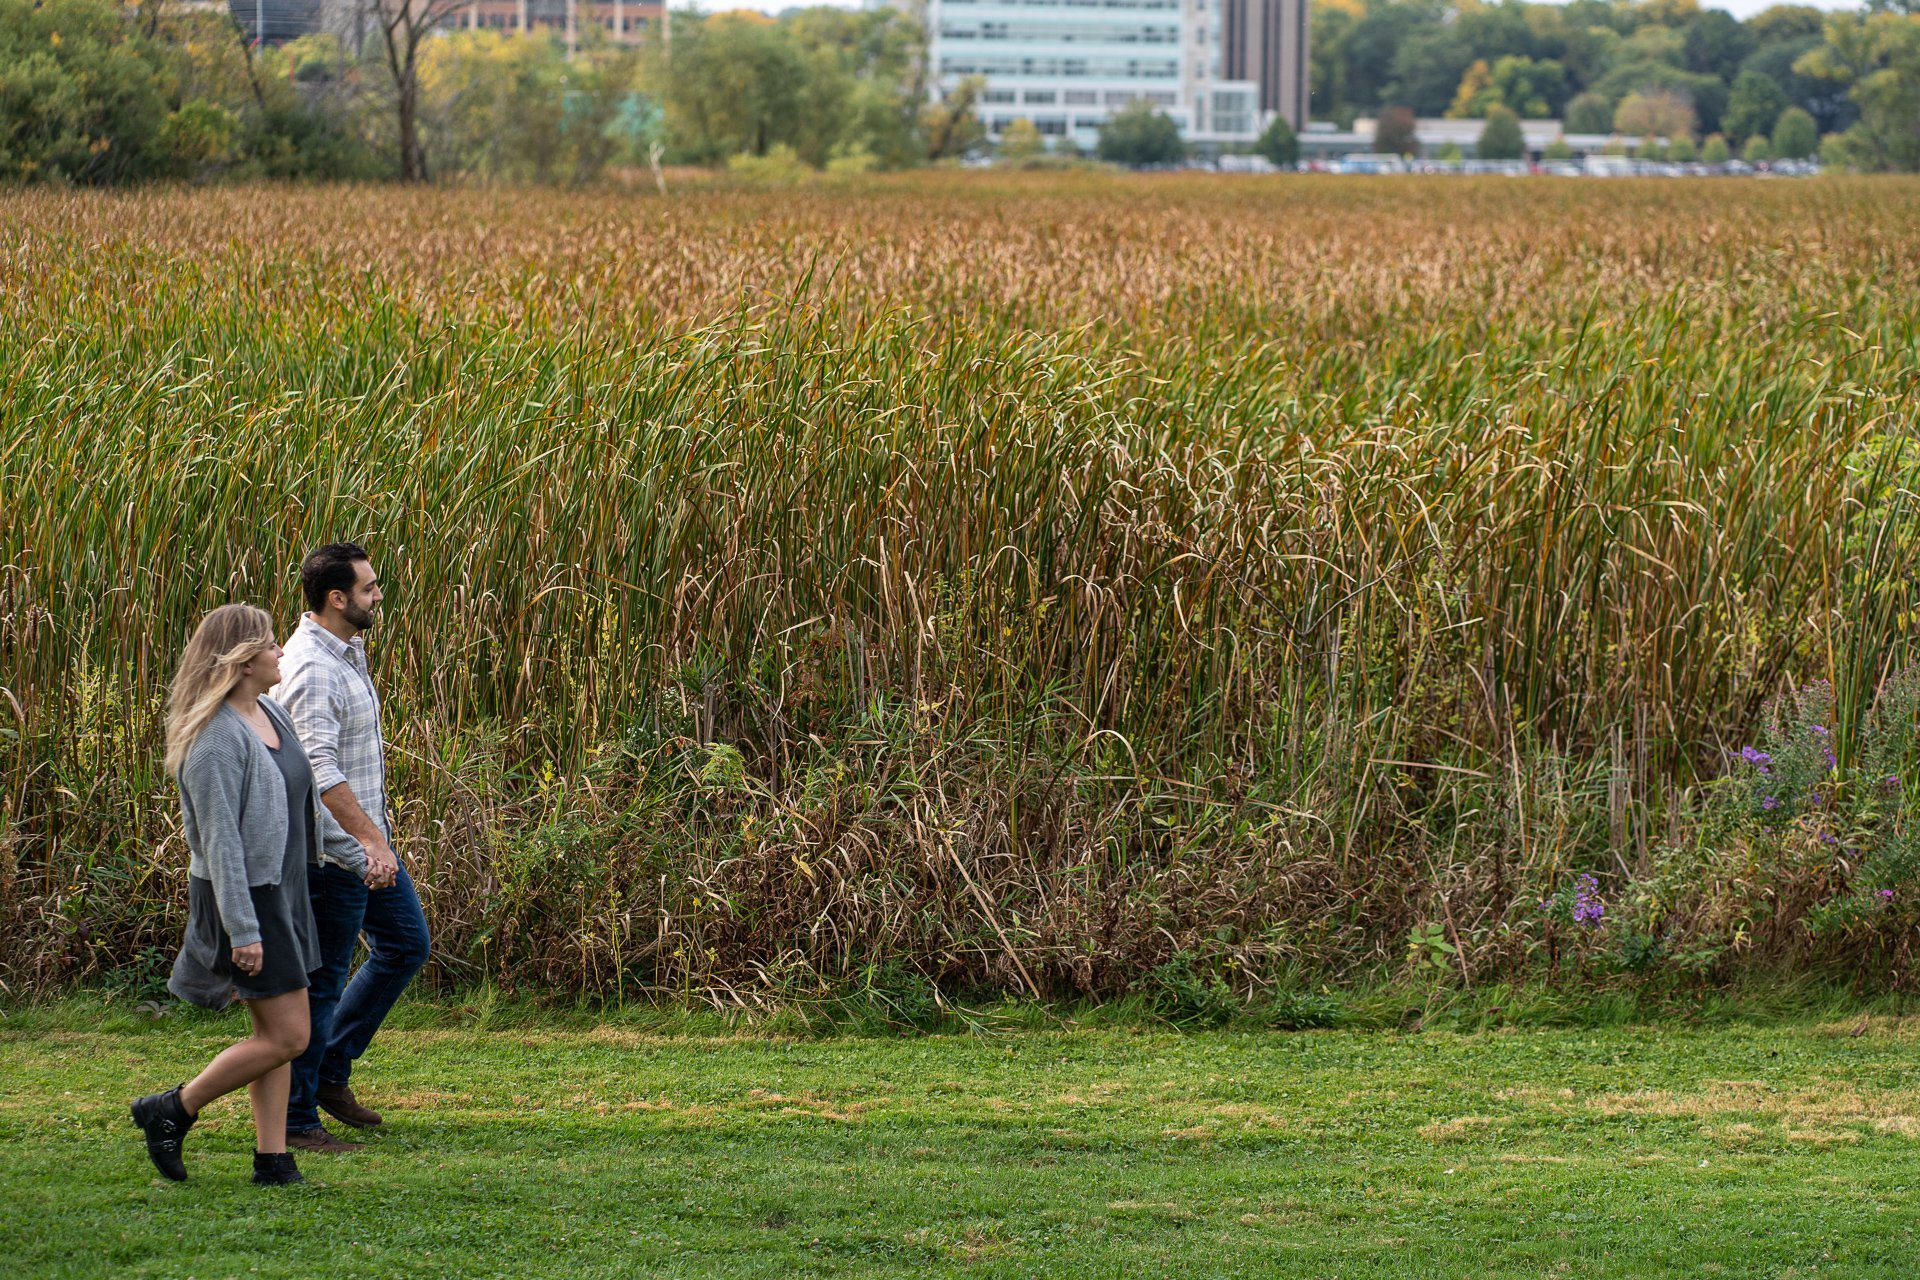 couple walking together with tall grass on background